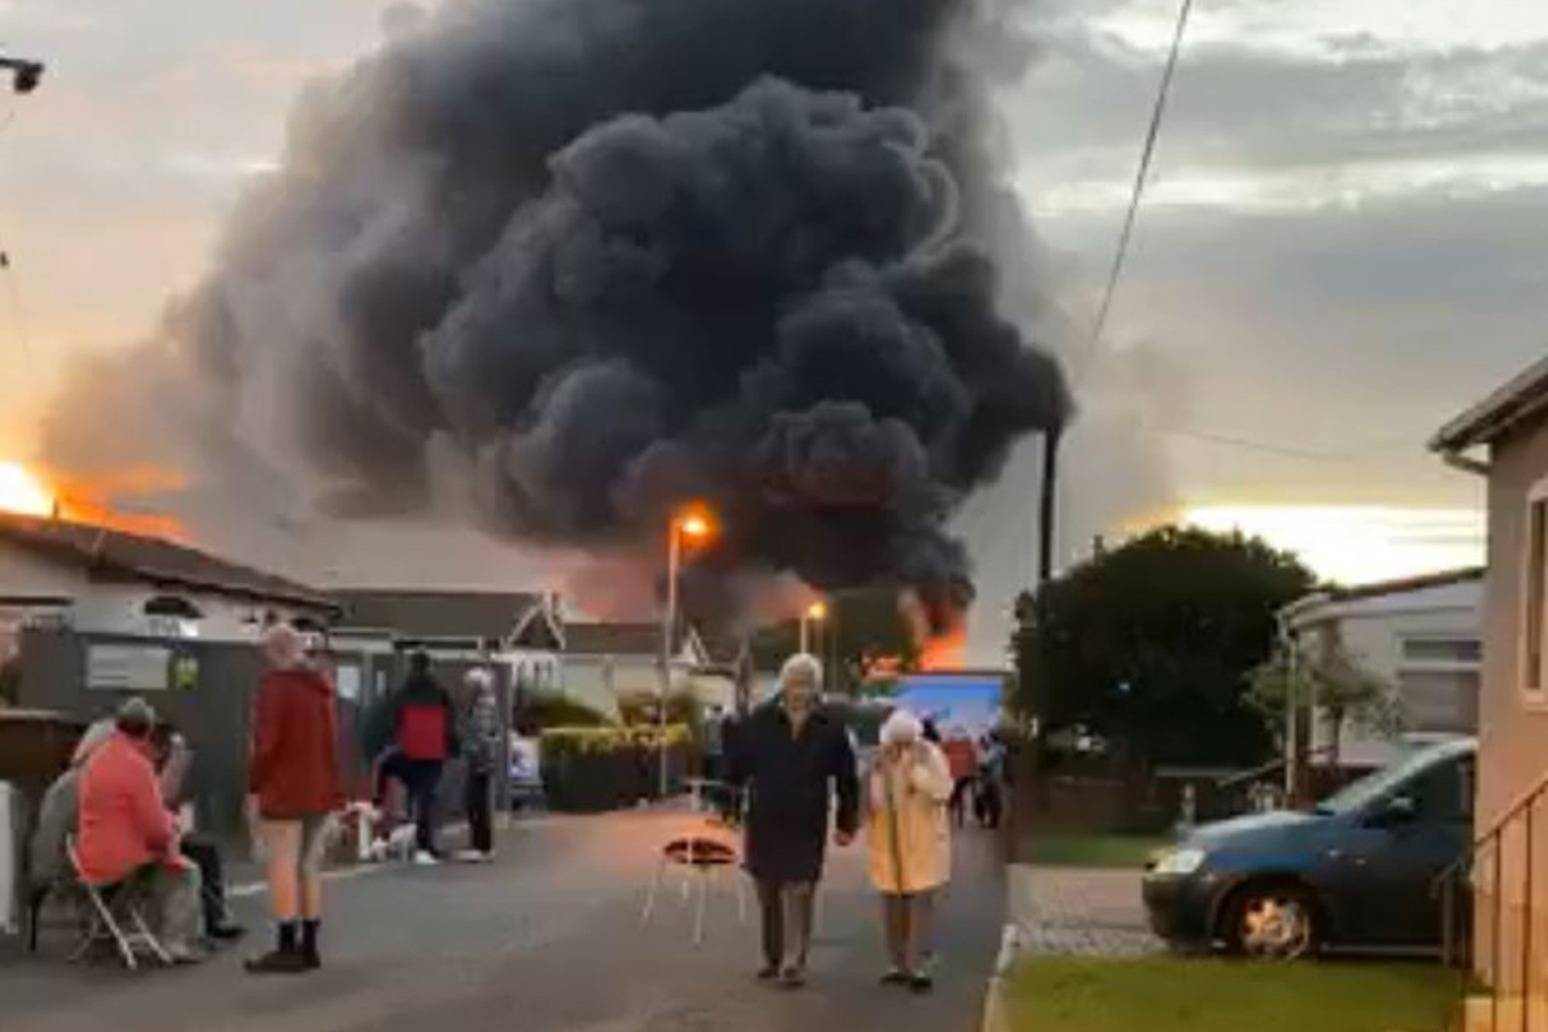 Firefighters battling huge industrial fire after reports of explosion